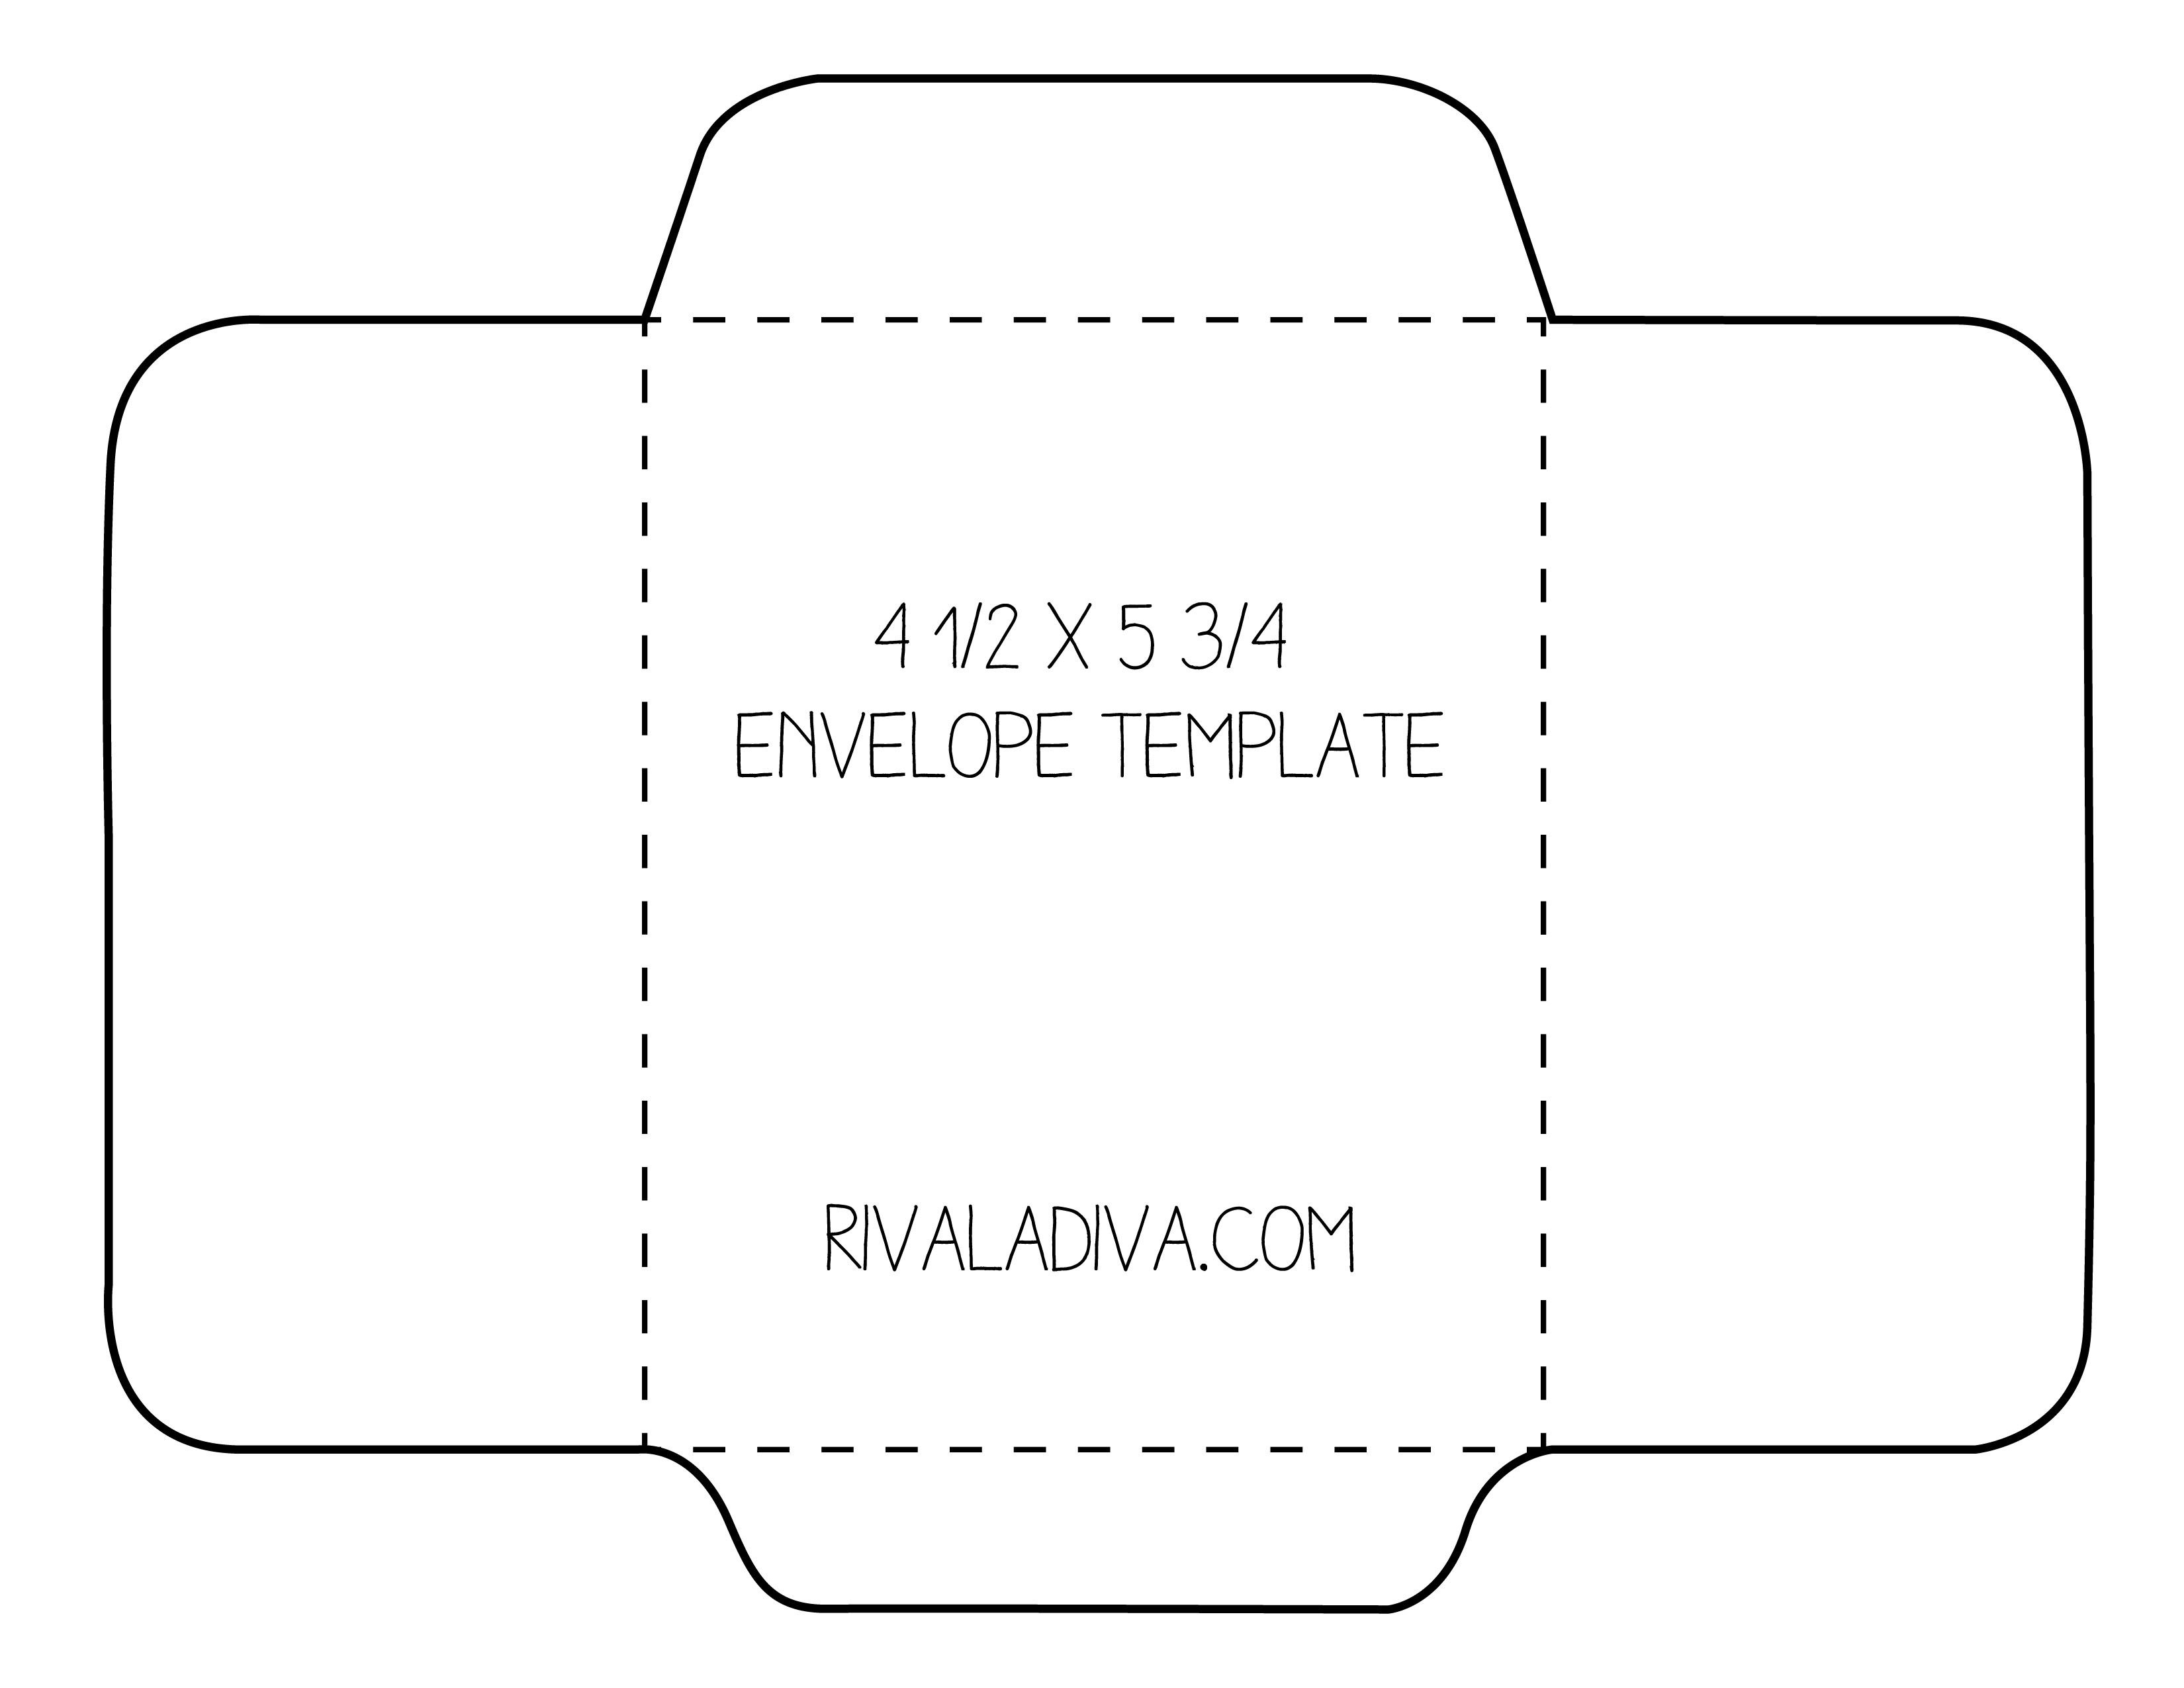 Envelope Template | Envelope Template For 8.5 X 11 Paper Diy - Free Printable Envelope Templates